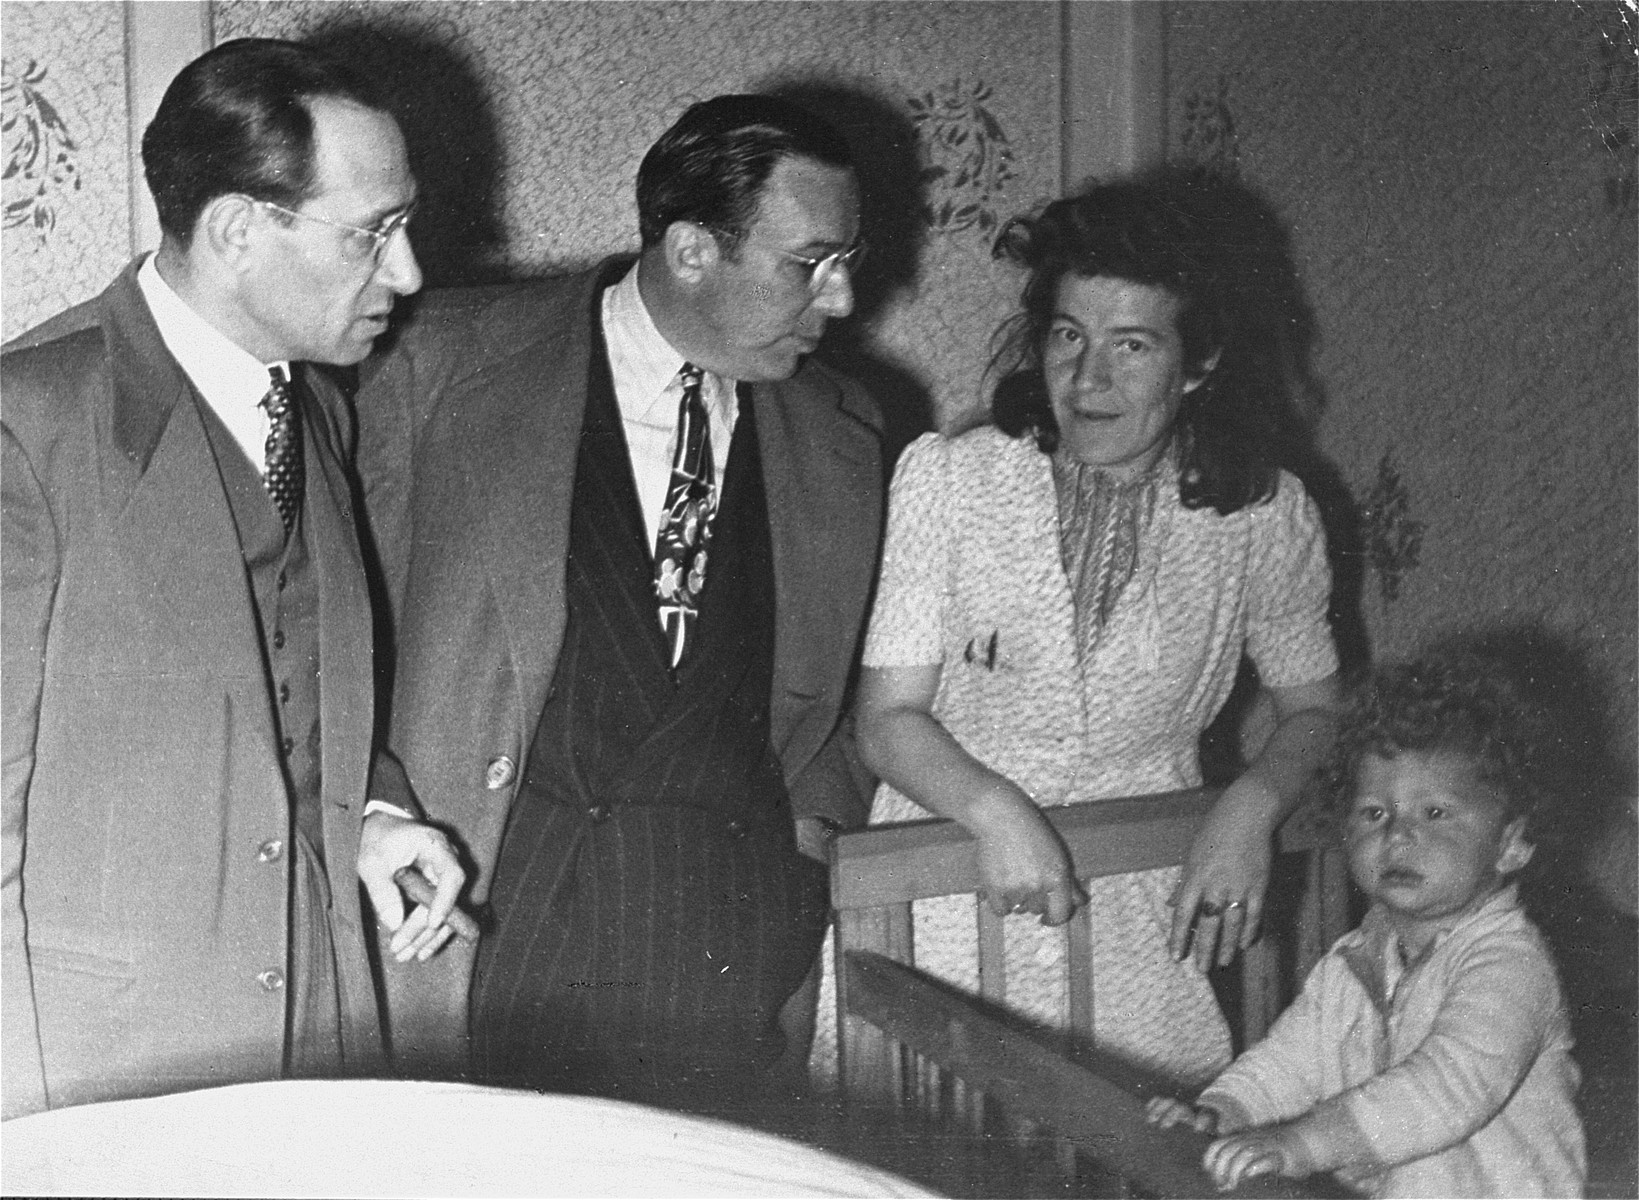 JDC representatives visit child care facilities at the Foehrenwald displaced persons camp.    Among those pictured is Samuel Haber, Director of JDC programs in the U.S. Zone from 1947 until 1954 (left).